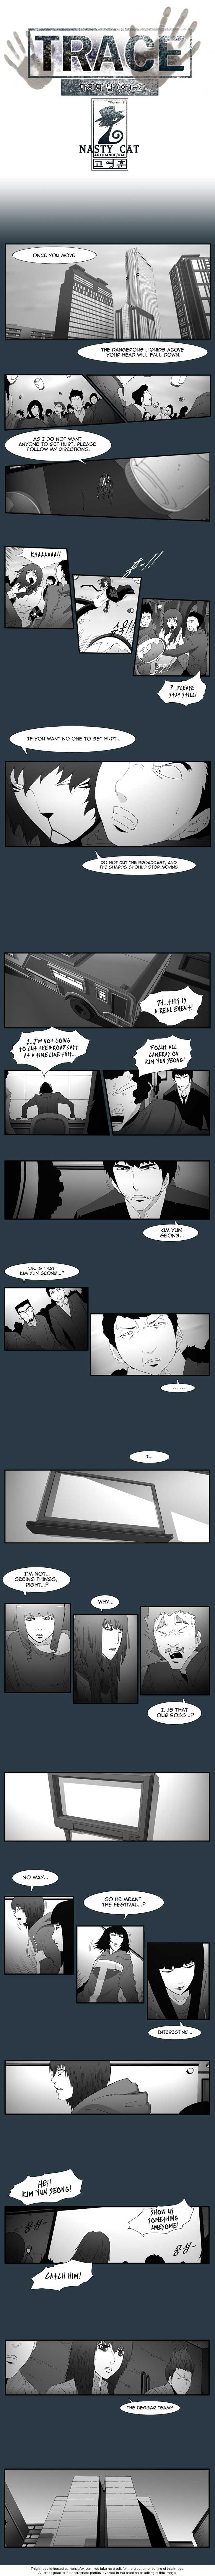 Trace 2 Page 1